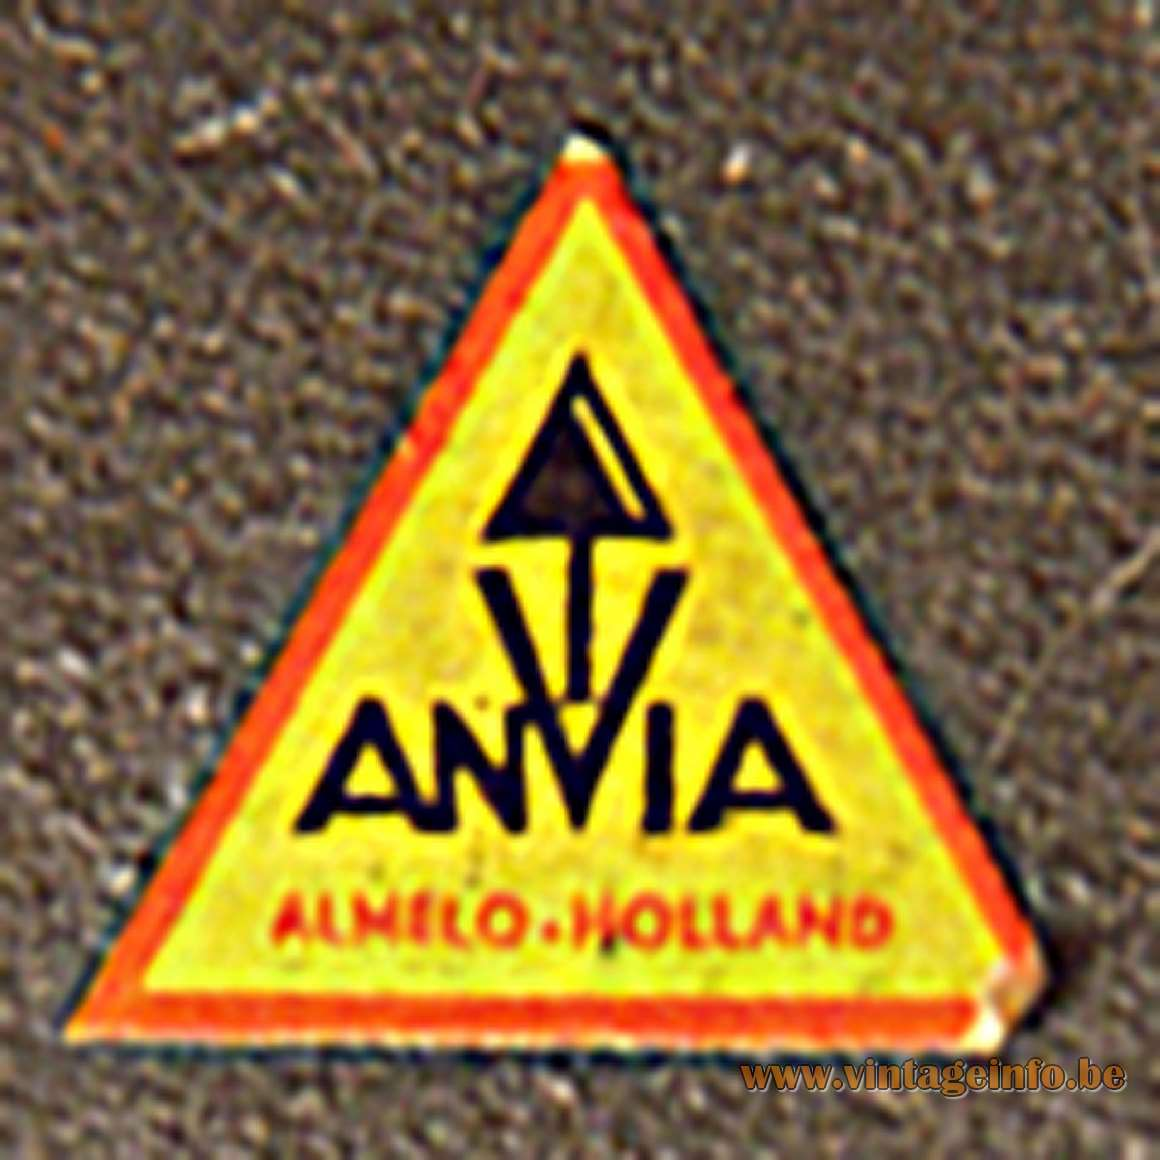 ANVIA Horseshoe Desk Lamp 6043 - ANVIA label & logo